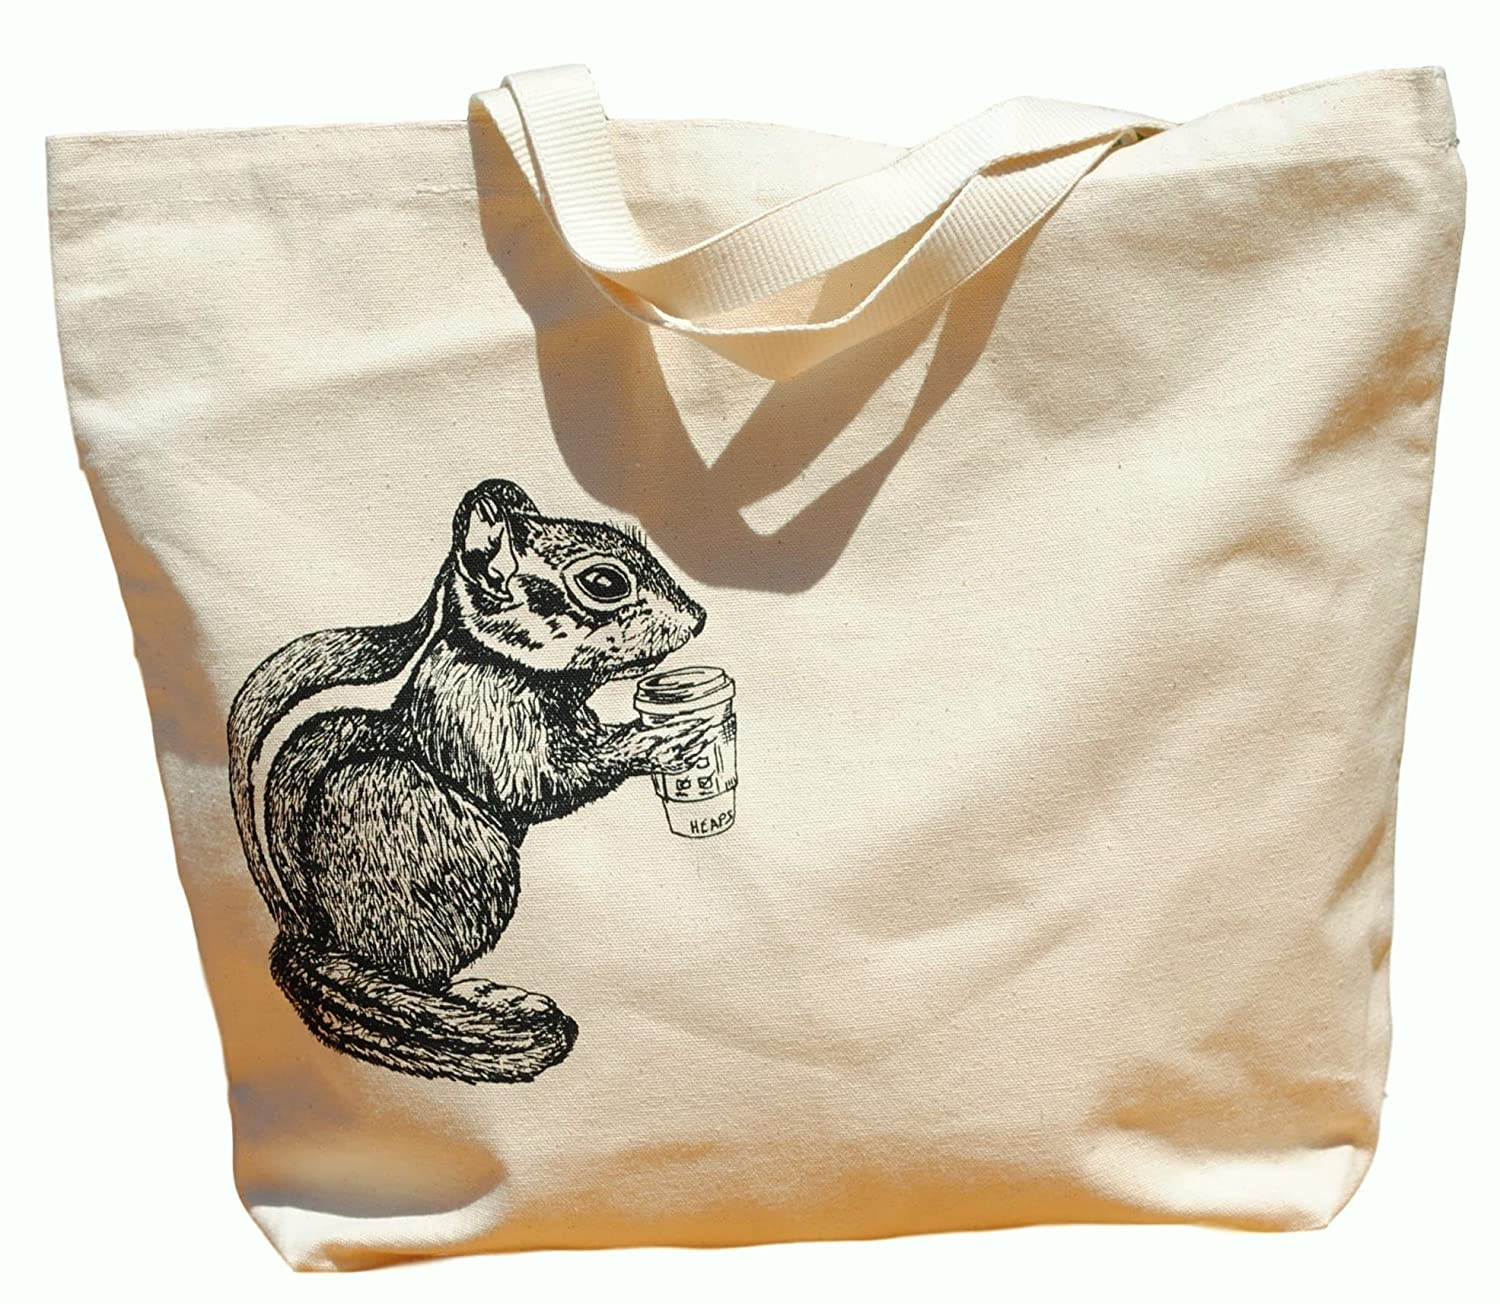 Canvas Tote Bag - Hand Printed Chipmunk Drinking Coffee - Market Travel Beach Shopper Grocery School